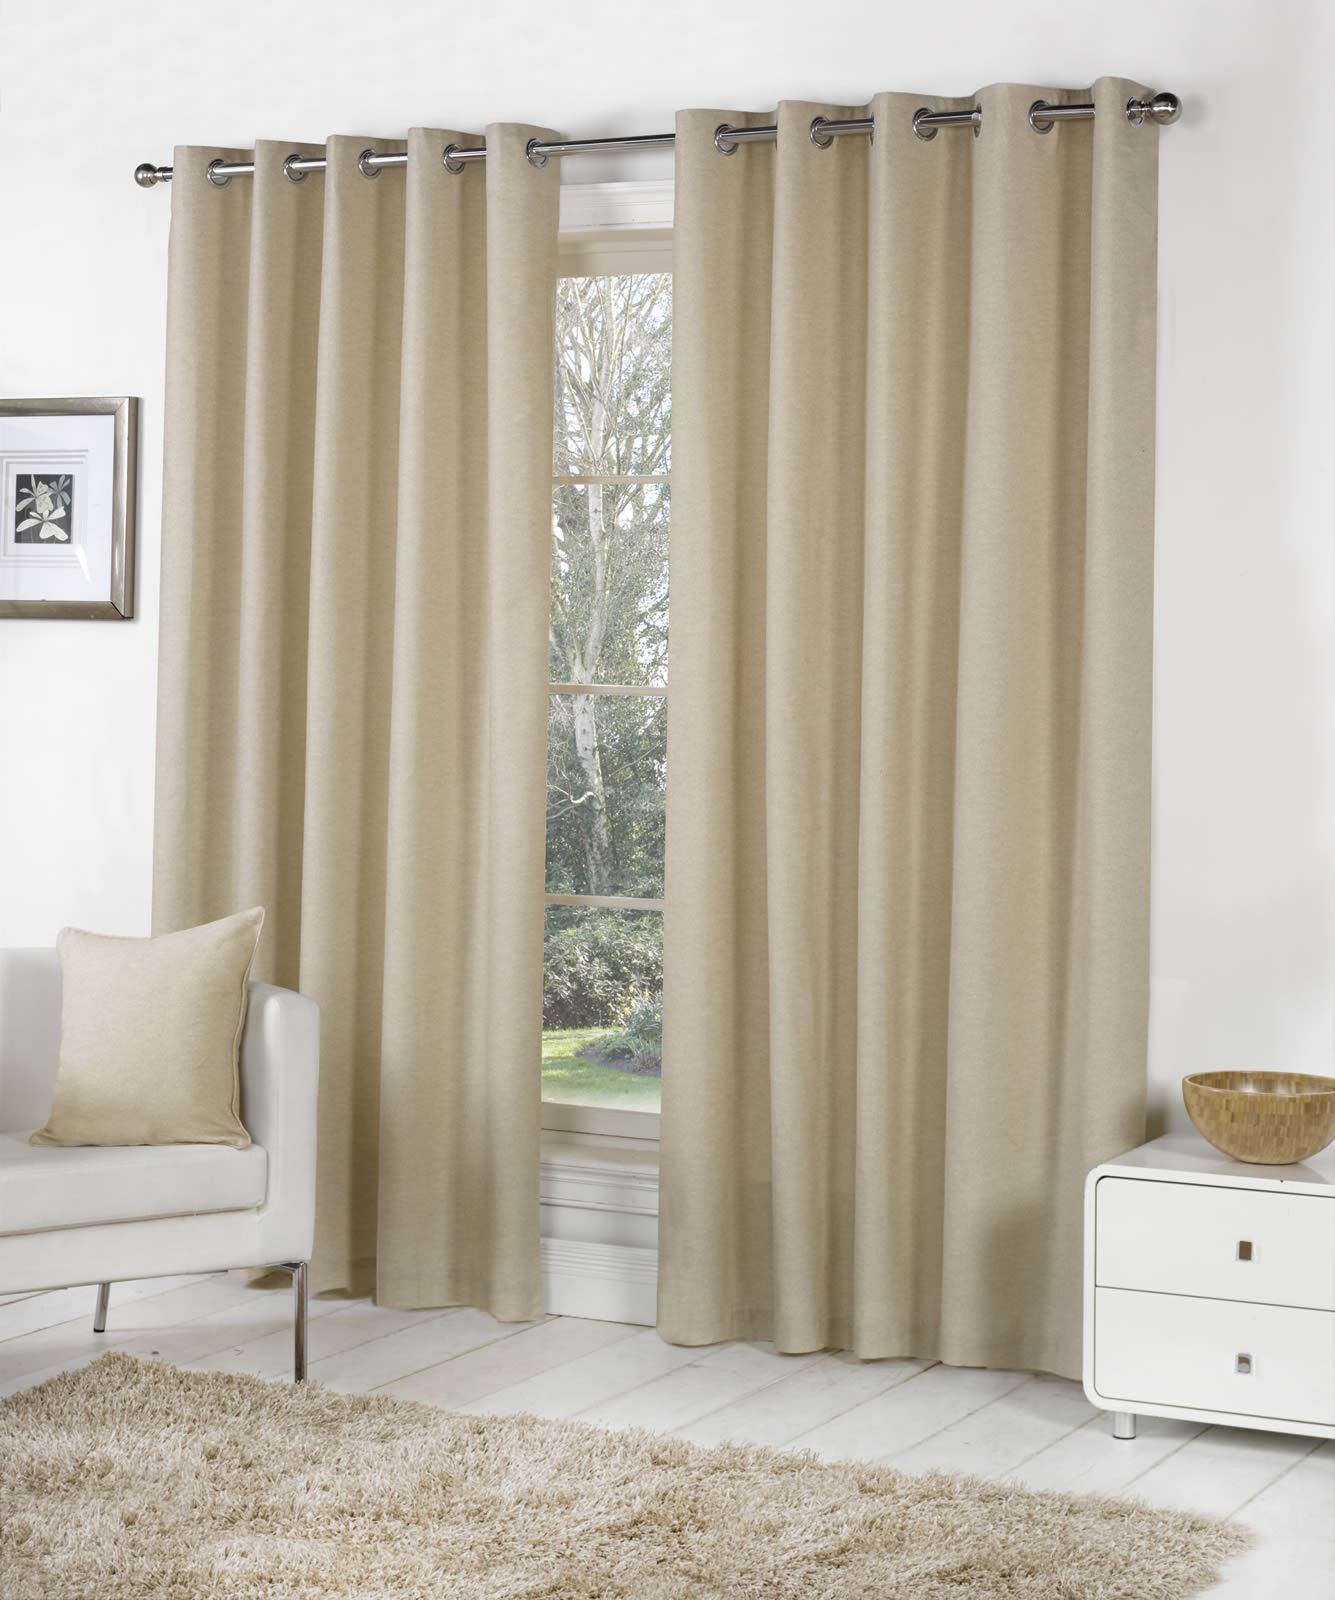 SORBONNE LINED EYELET CURTAINS 100% COTTON READY MADE RING